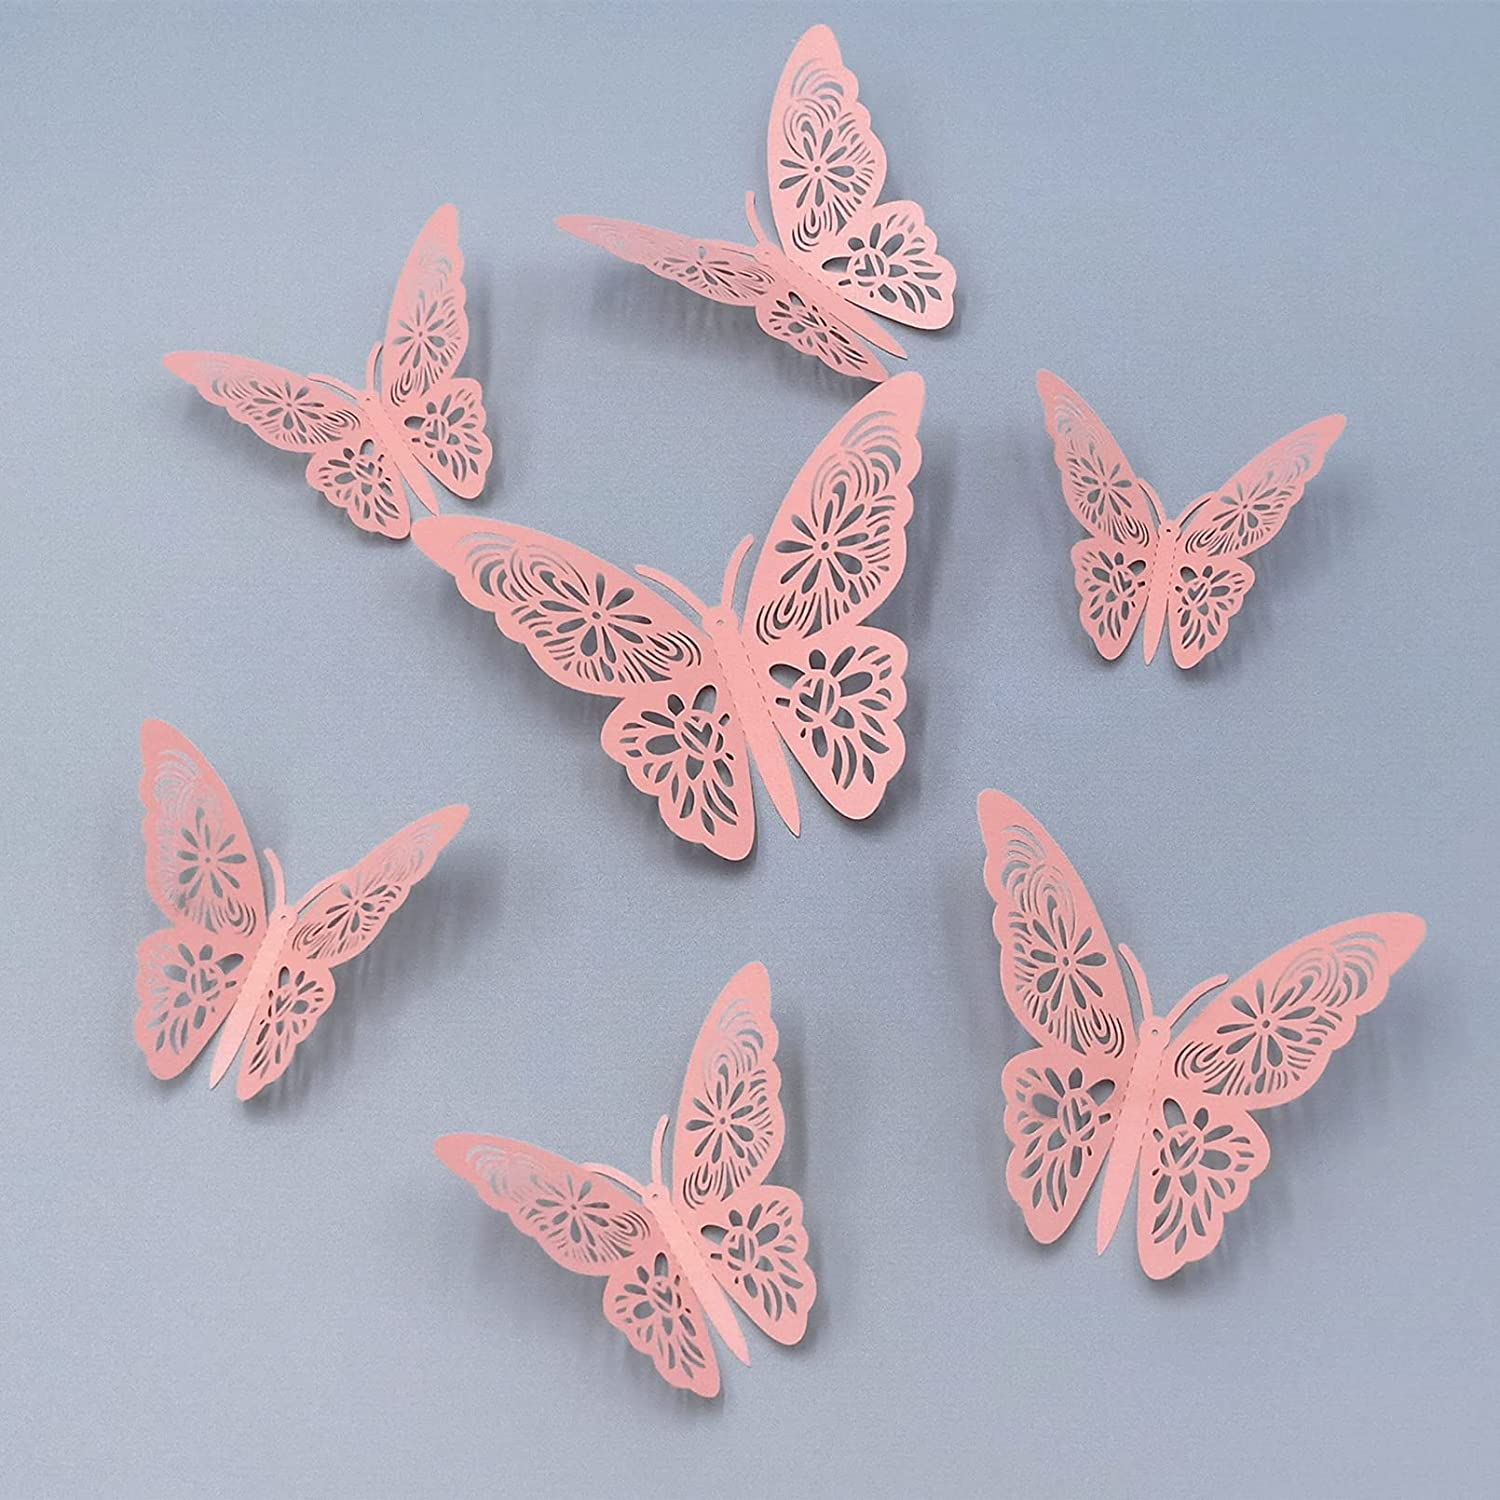 24 Pcs Popular products Sale item Butterfly Decor Decorations Wall